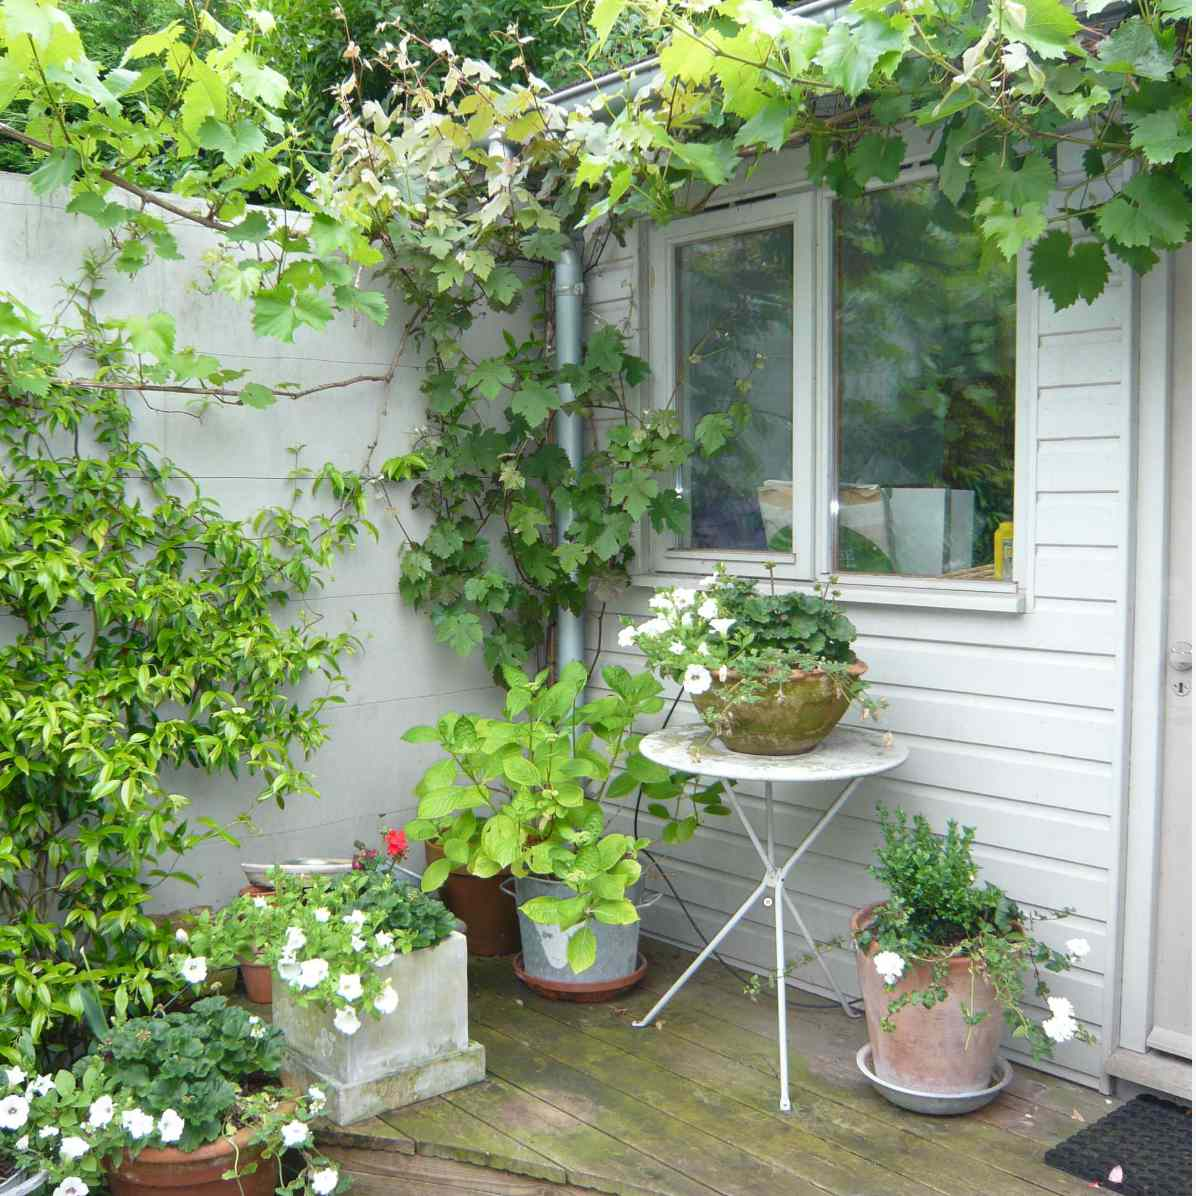 Vertical garden in courtyard with several potted plants nearby.